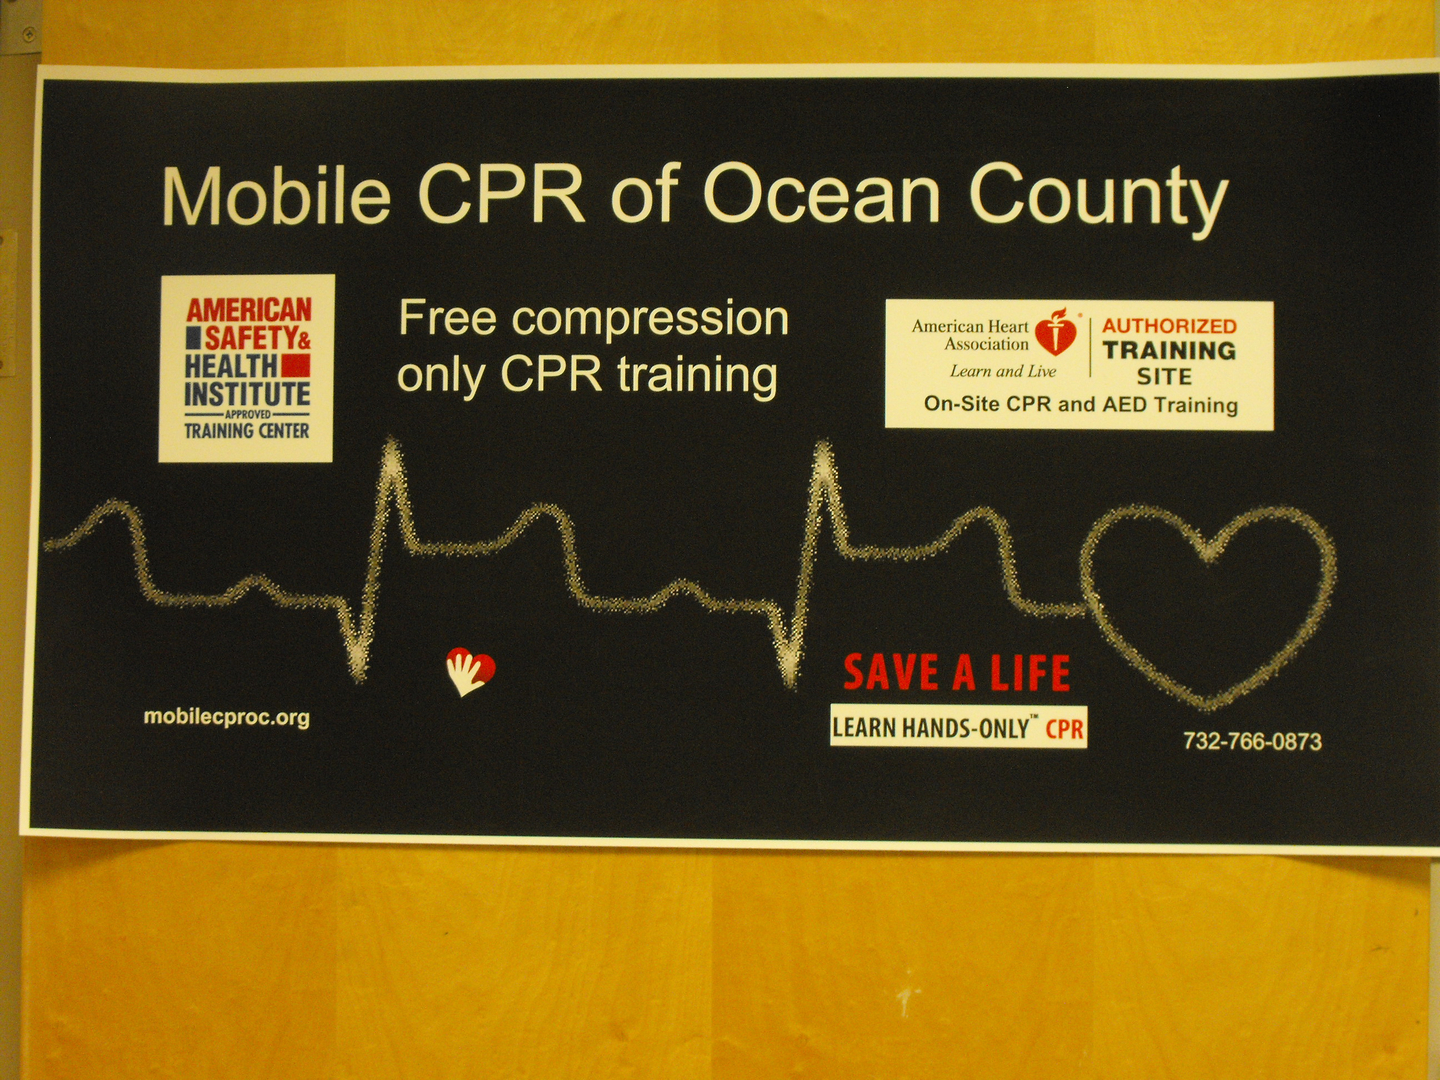 Free cpr training cpr training class mobile cpr of ocean county the new basic life support healthcare provider classes will be starting after 21716 you will no longer be able to take a renewal class for healthcare xflitez Images